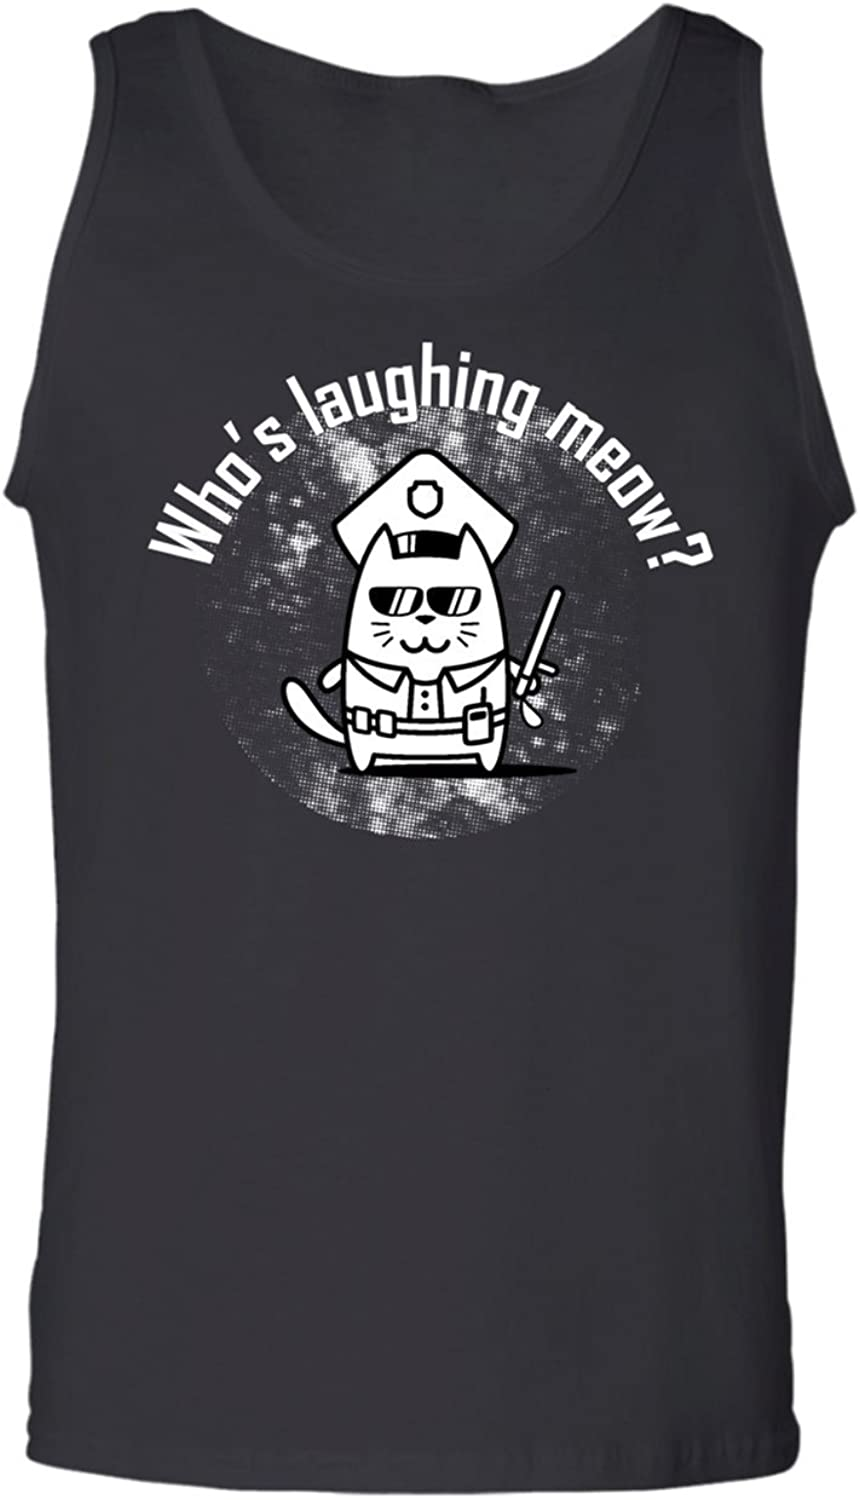 Teechopchop Who's Laughing Meow,Funny Police Cat, Pet Tank Top